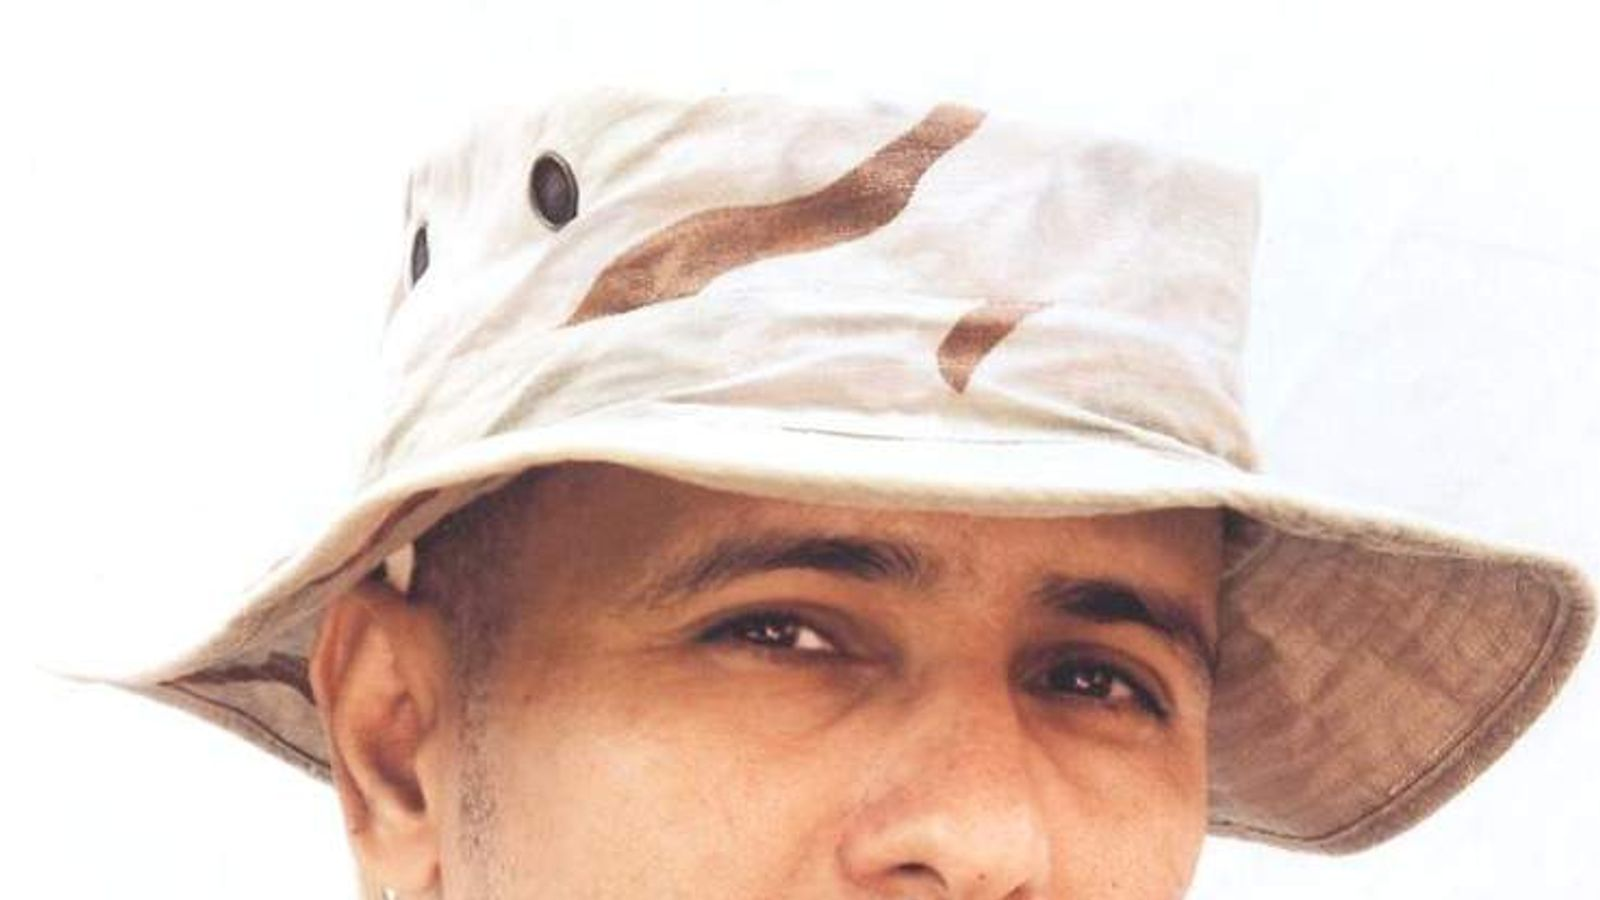 Mohamedou Ould Slahi. Pic: International Committee of the Red Cross